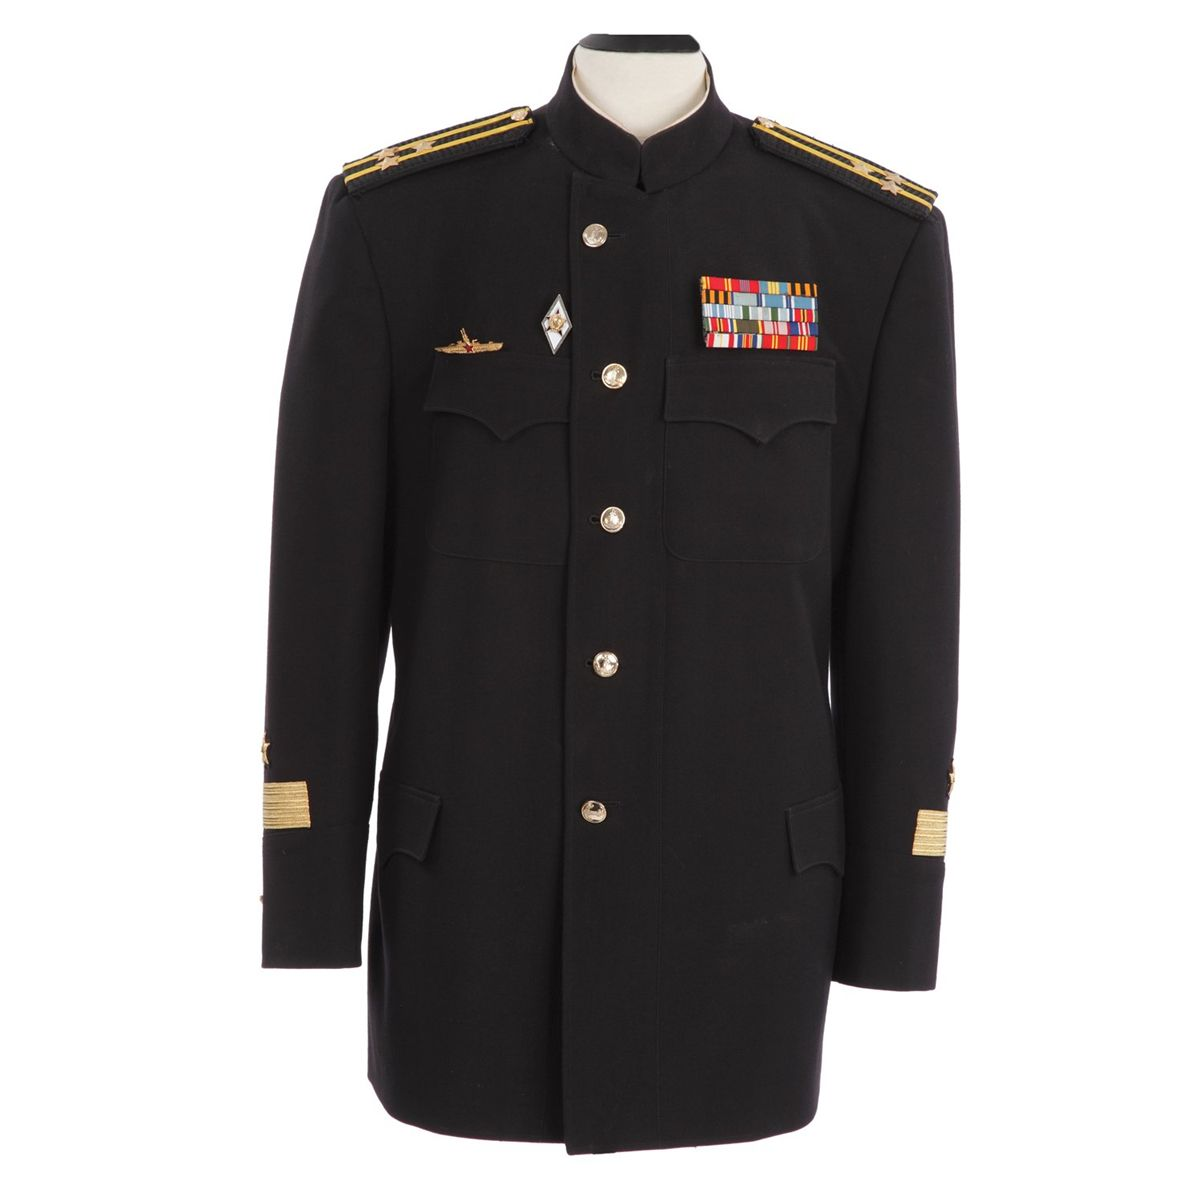 Submarine Uniform 6